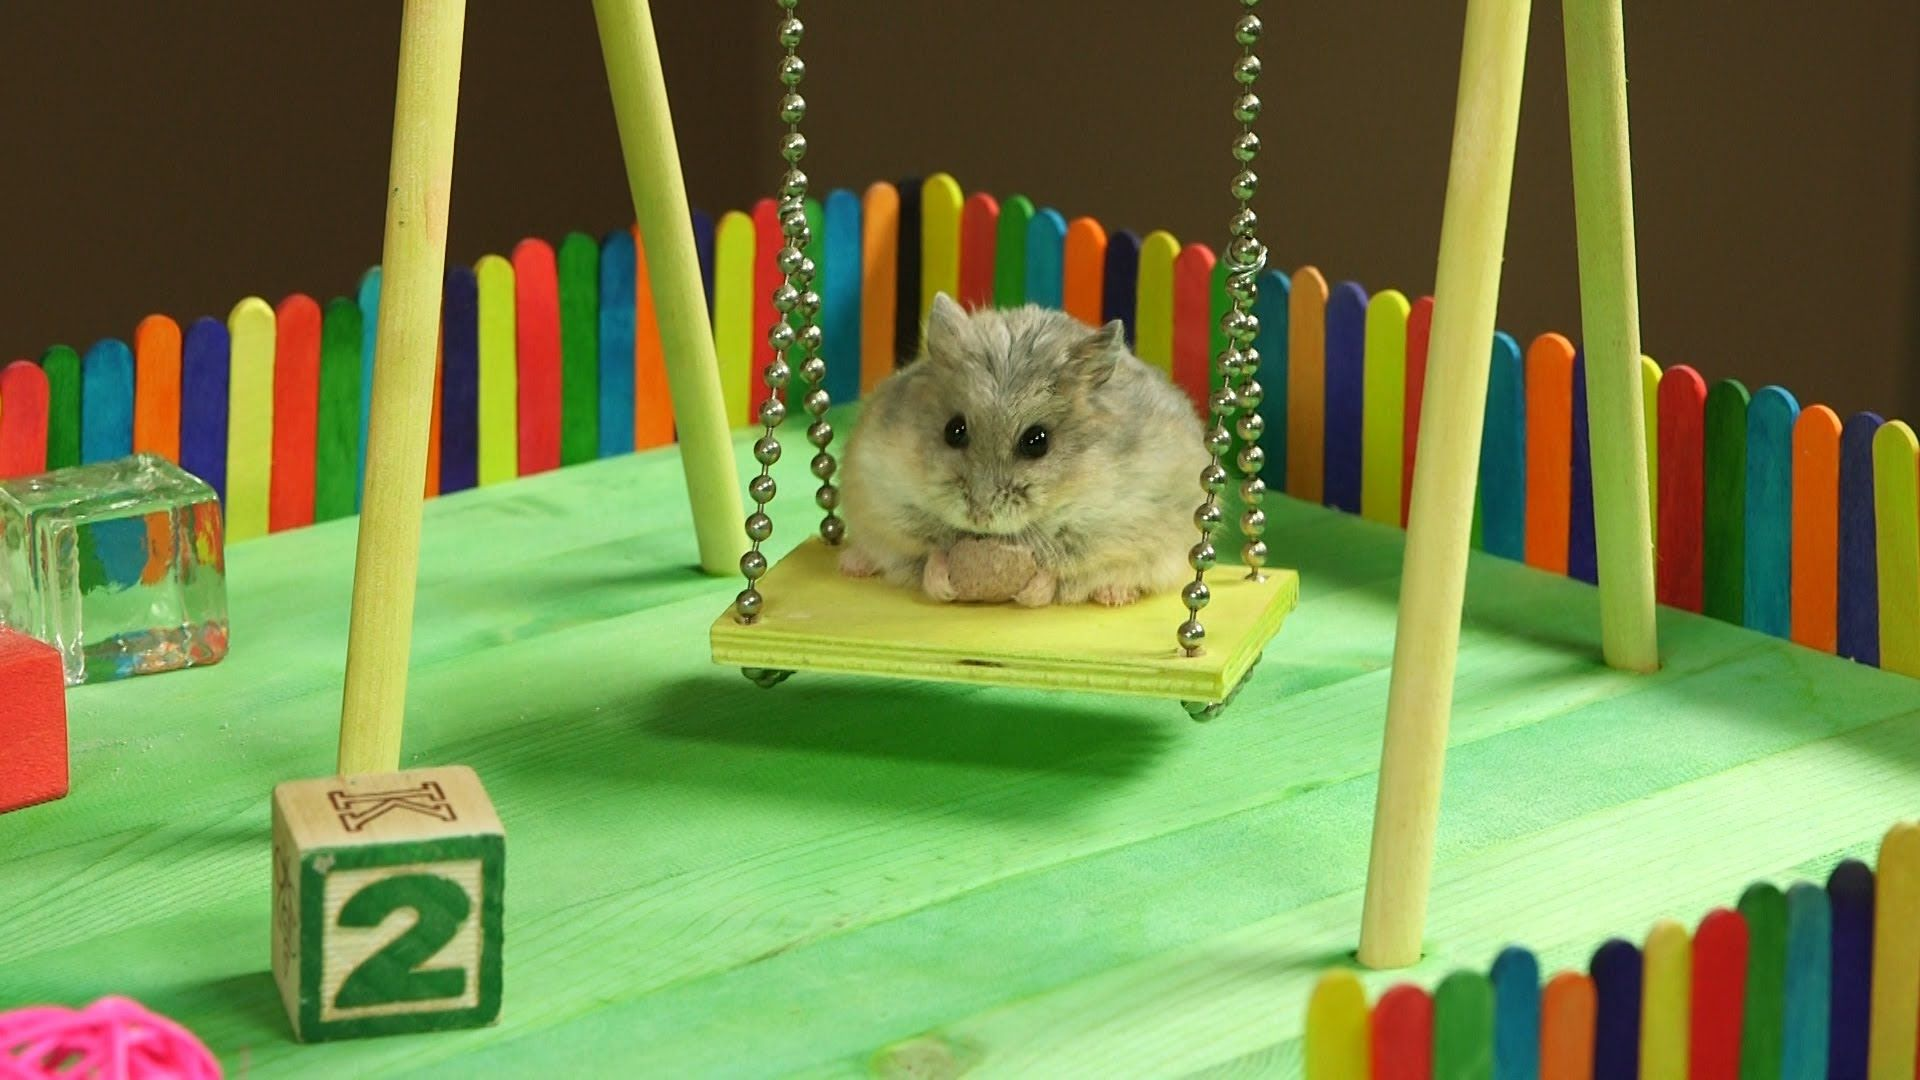 Tiny Hamster In A Tiny Playground This Is So Cute And At The End